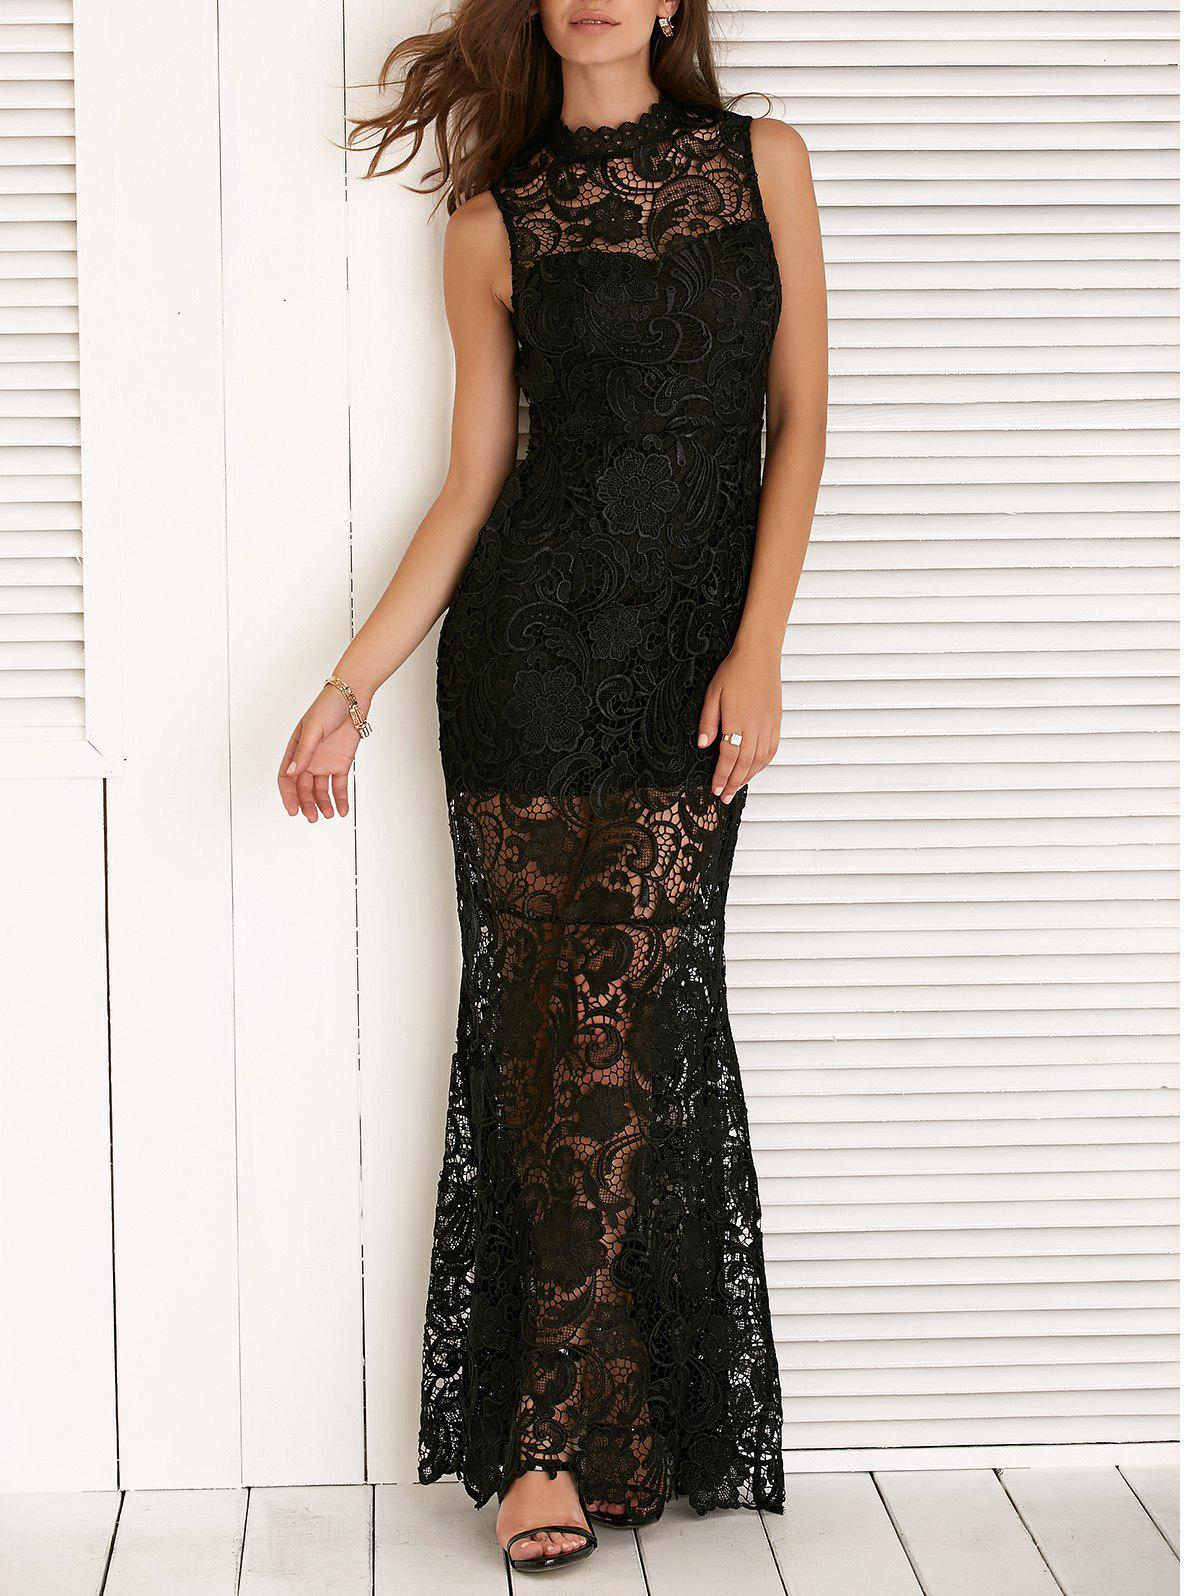 Sleeveless See-Through Lace Splicing Maxi Dress - BLACK XL